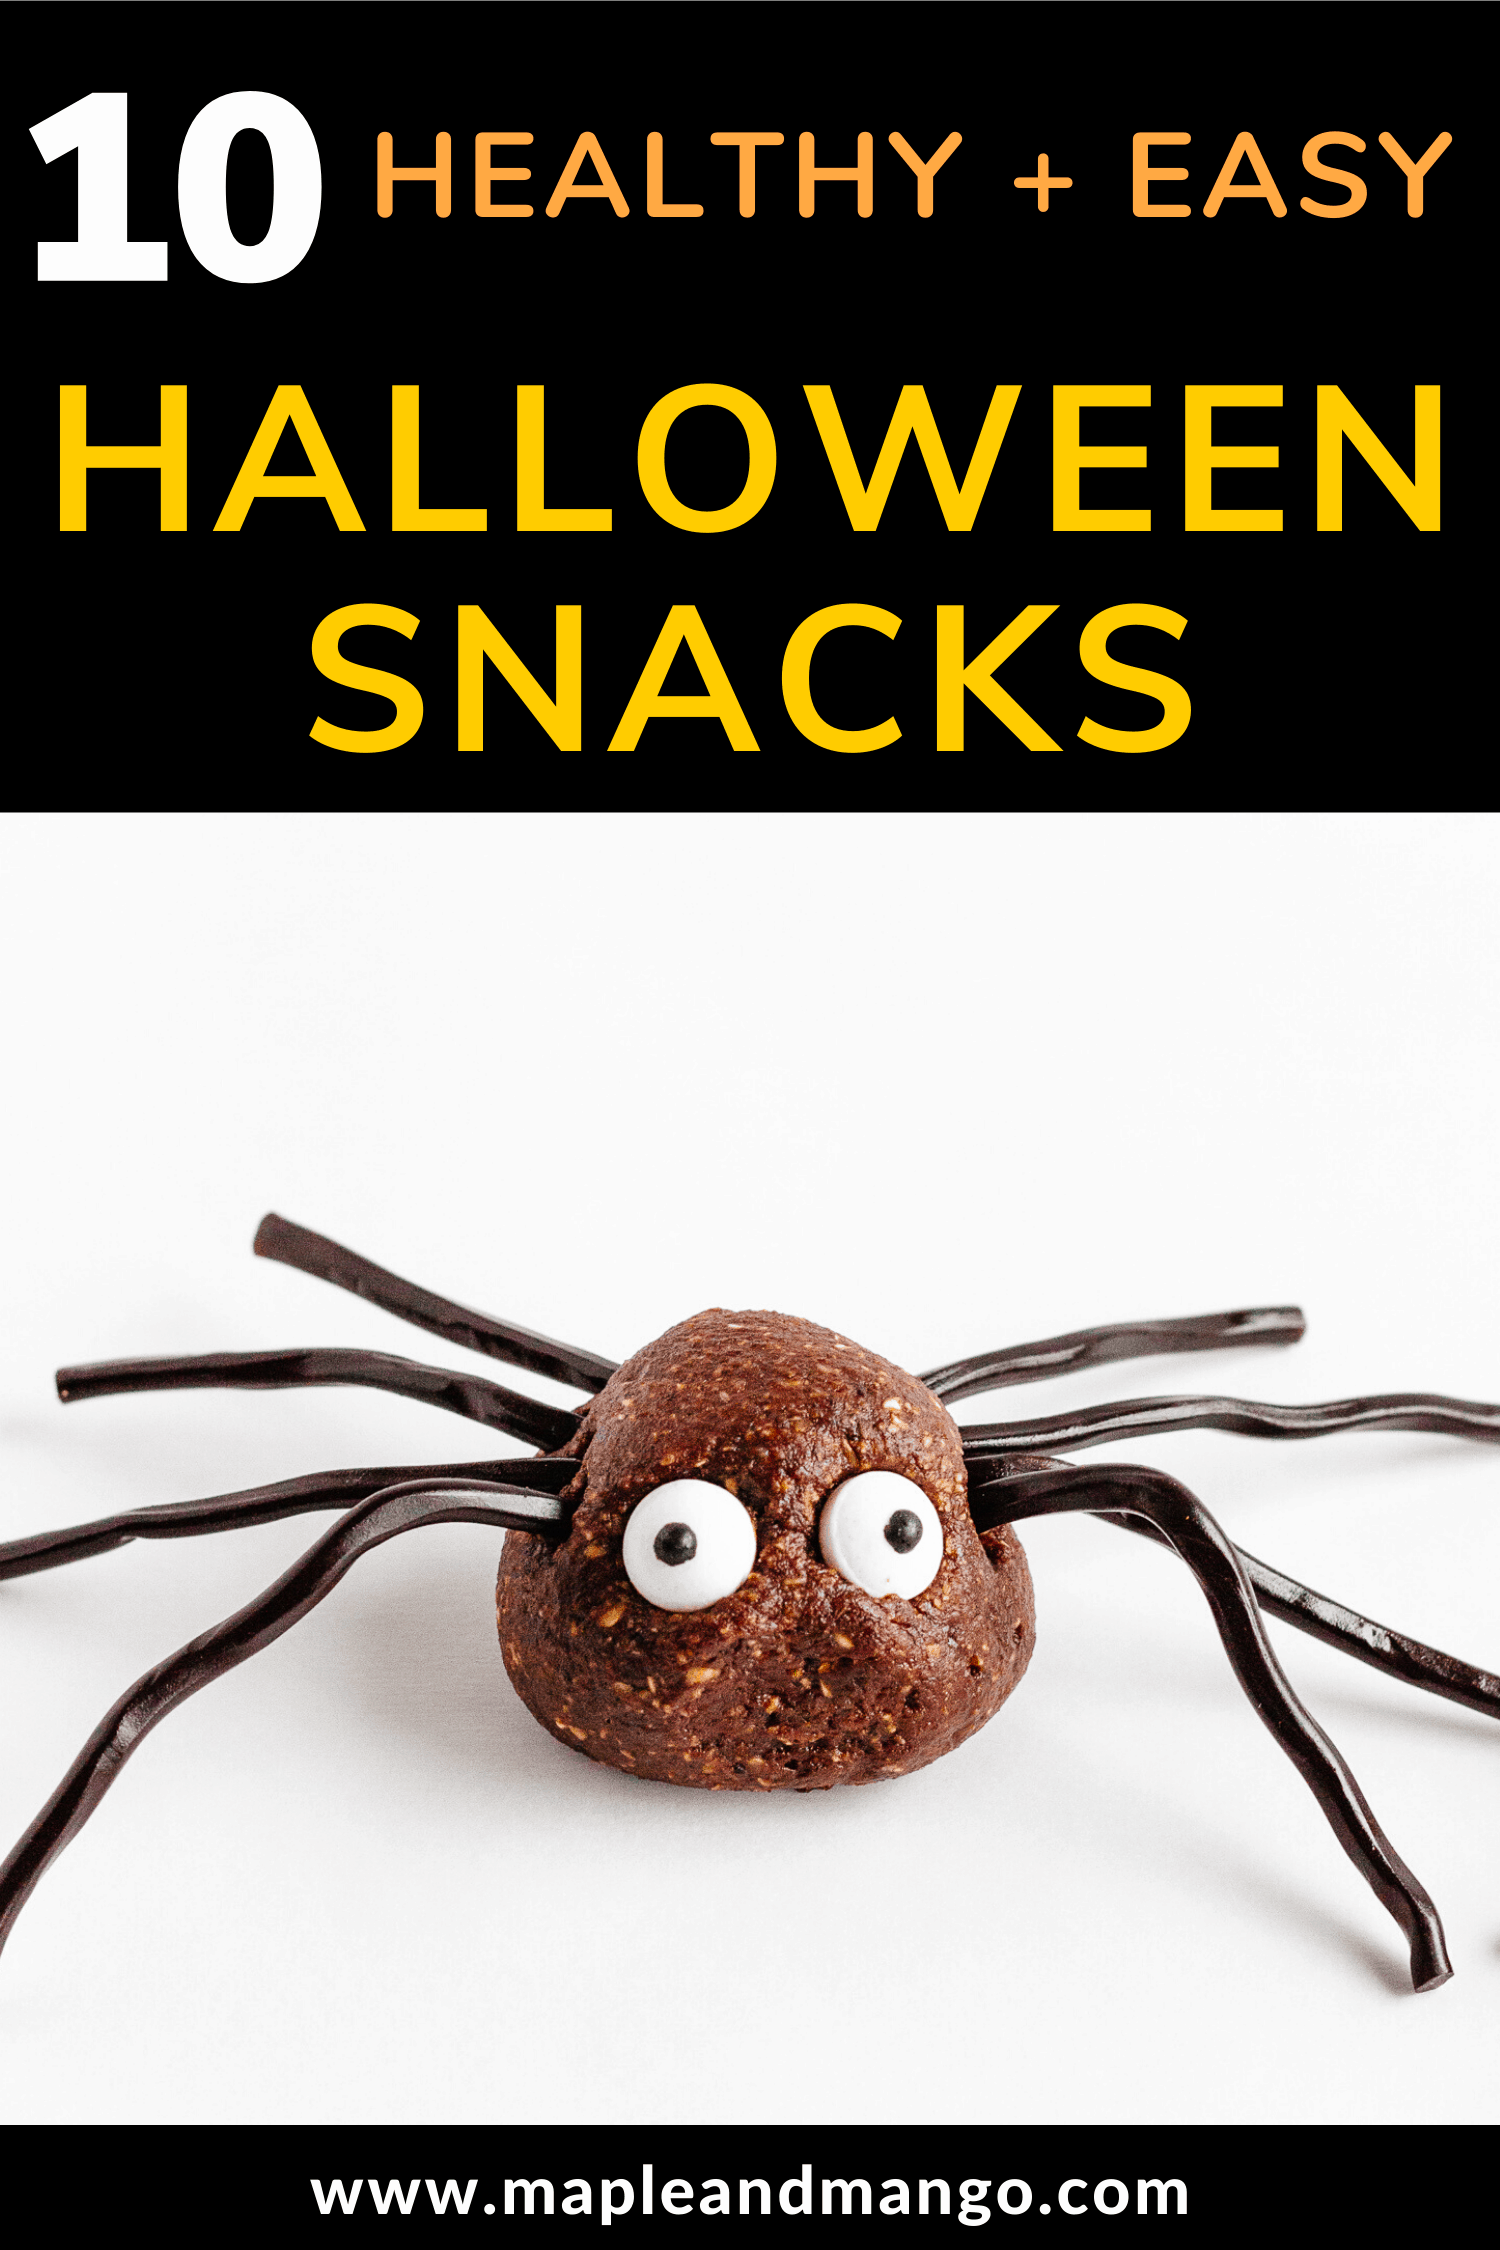 Pinterest image for 10 Healthy + Easy Halloween Snacks